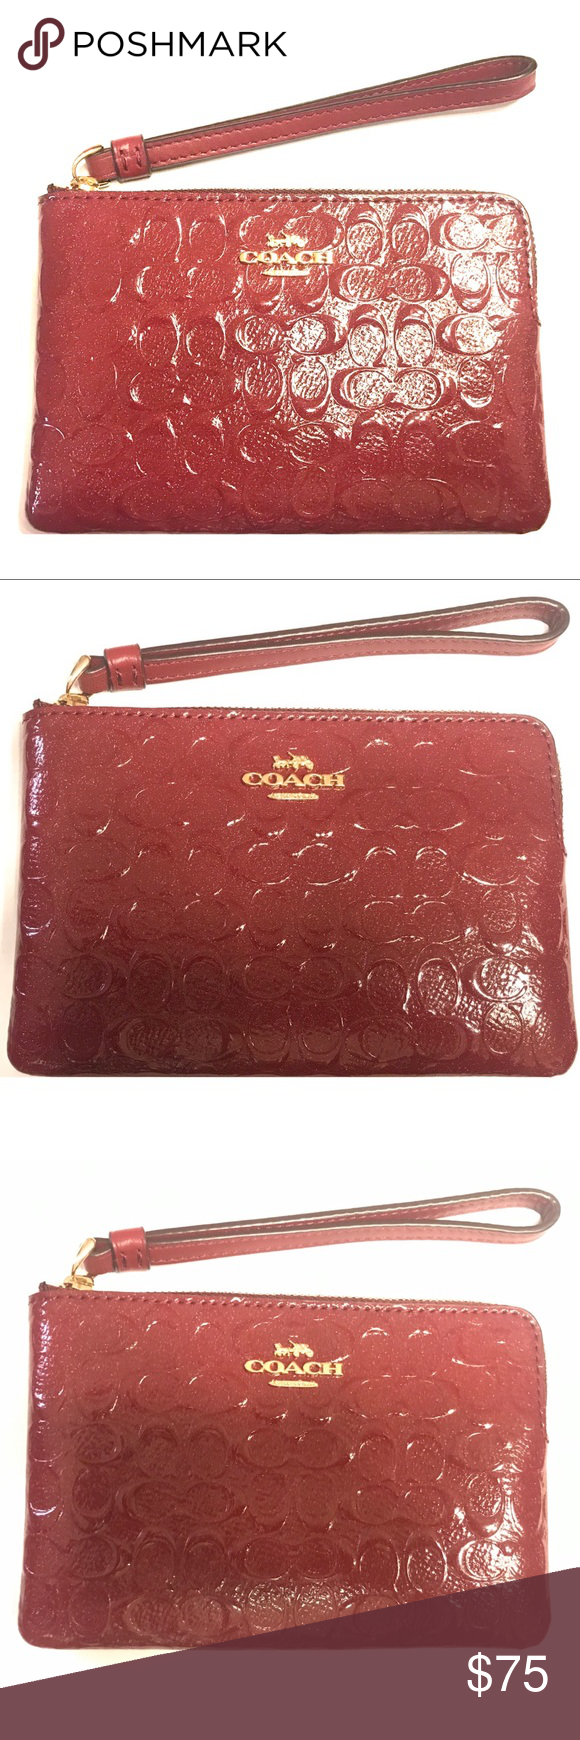 fc169853f237 NWT Authentic Coach Zip Wristlet Signature Leather Authentic Coach Corner  Zip Wristlet In Signature Leather  Firm Price  Signature patent leather  with a ...